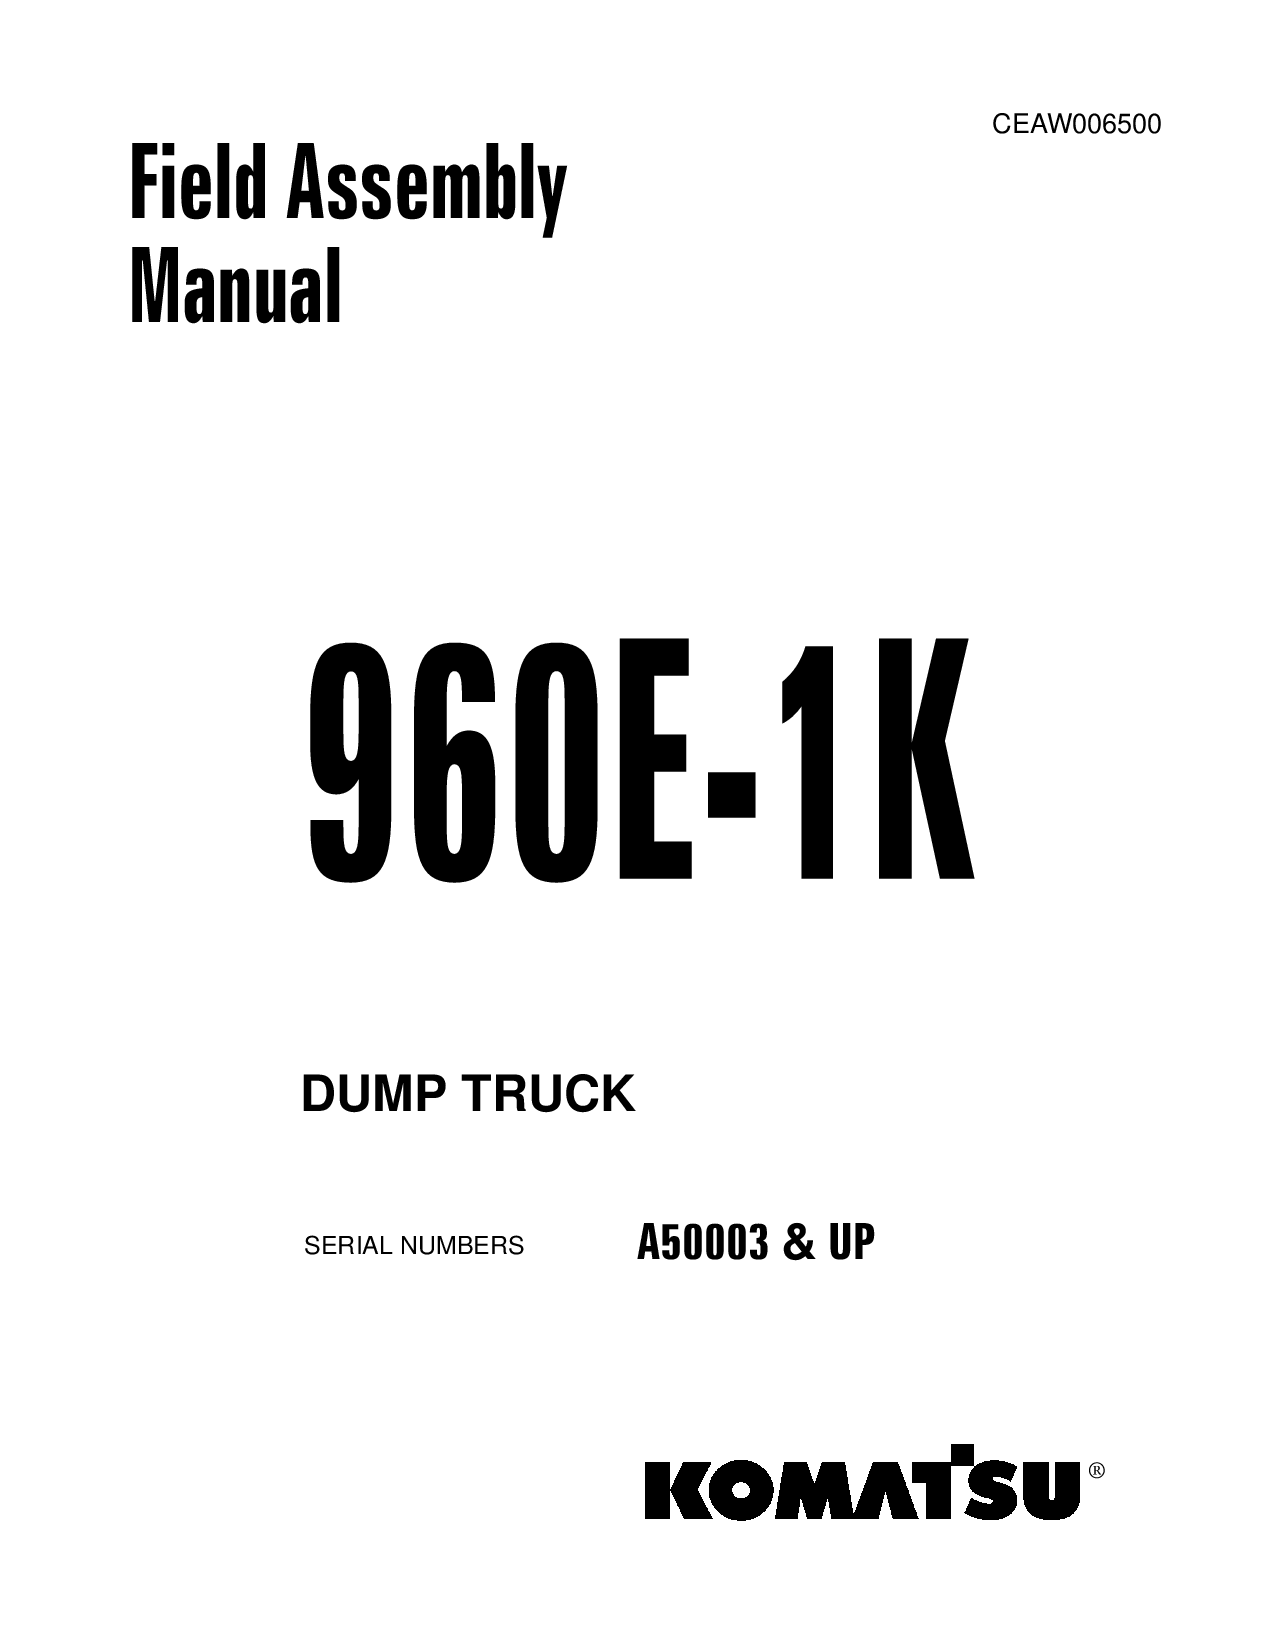 Komatsu 960E-1 Operation and Maintenance Manual